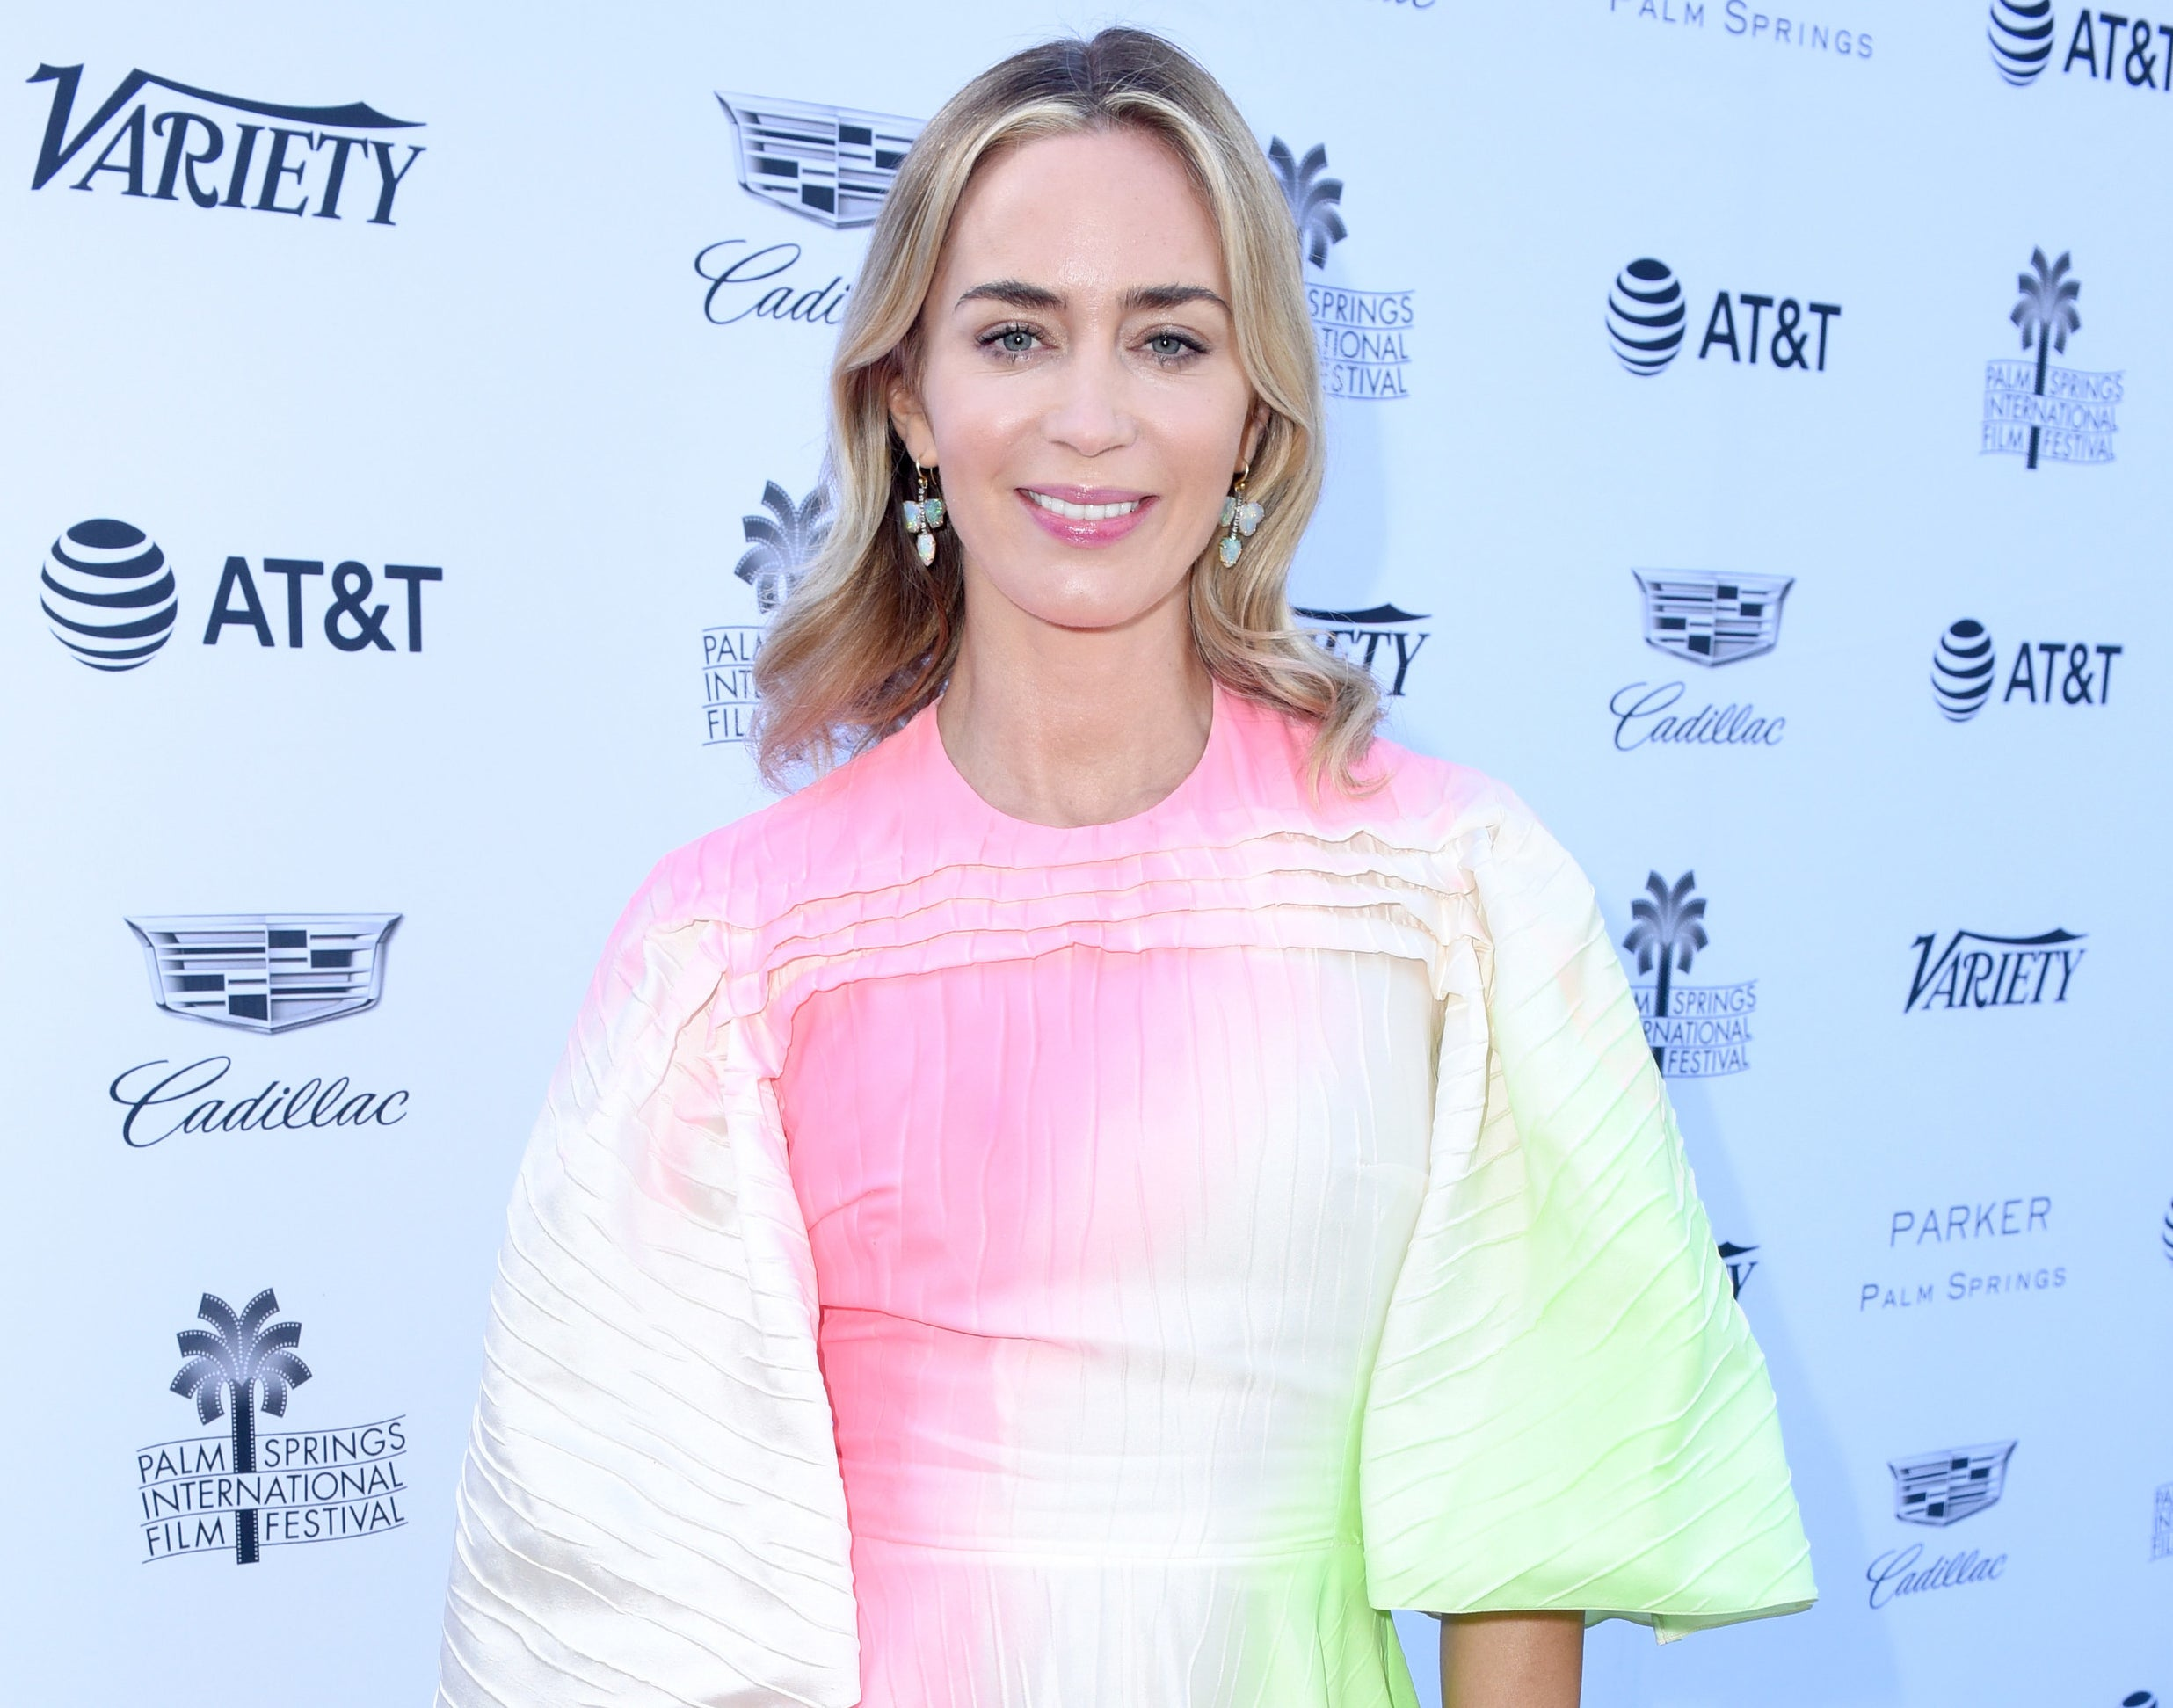 Emily attends an event in a white, pink, and green ombre dress with puffy sleeves